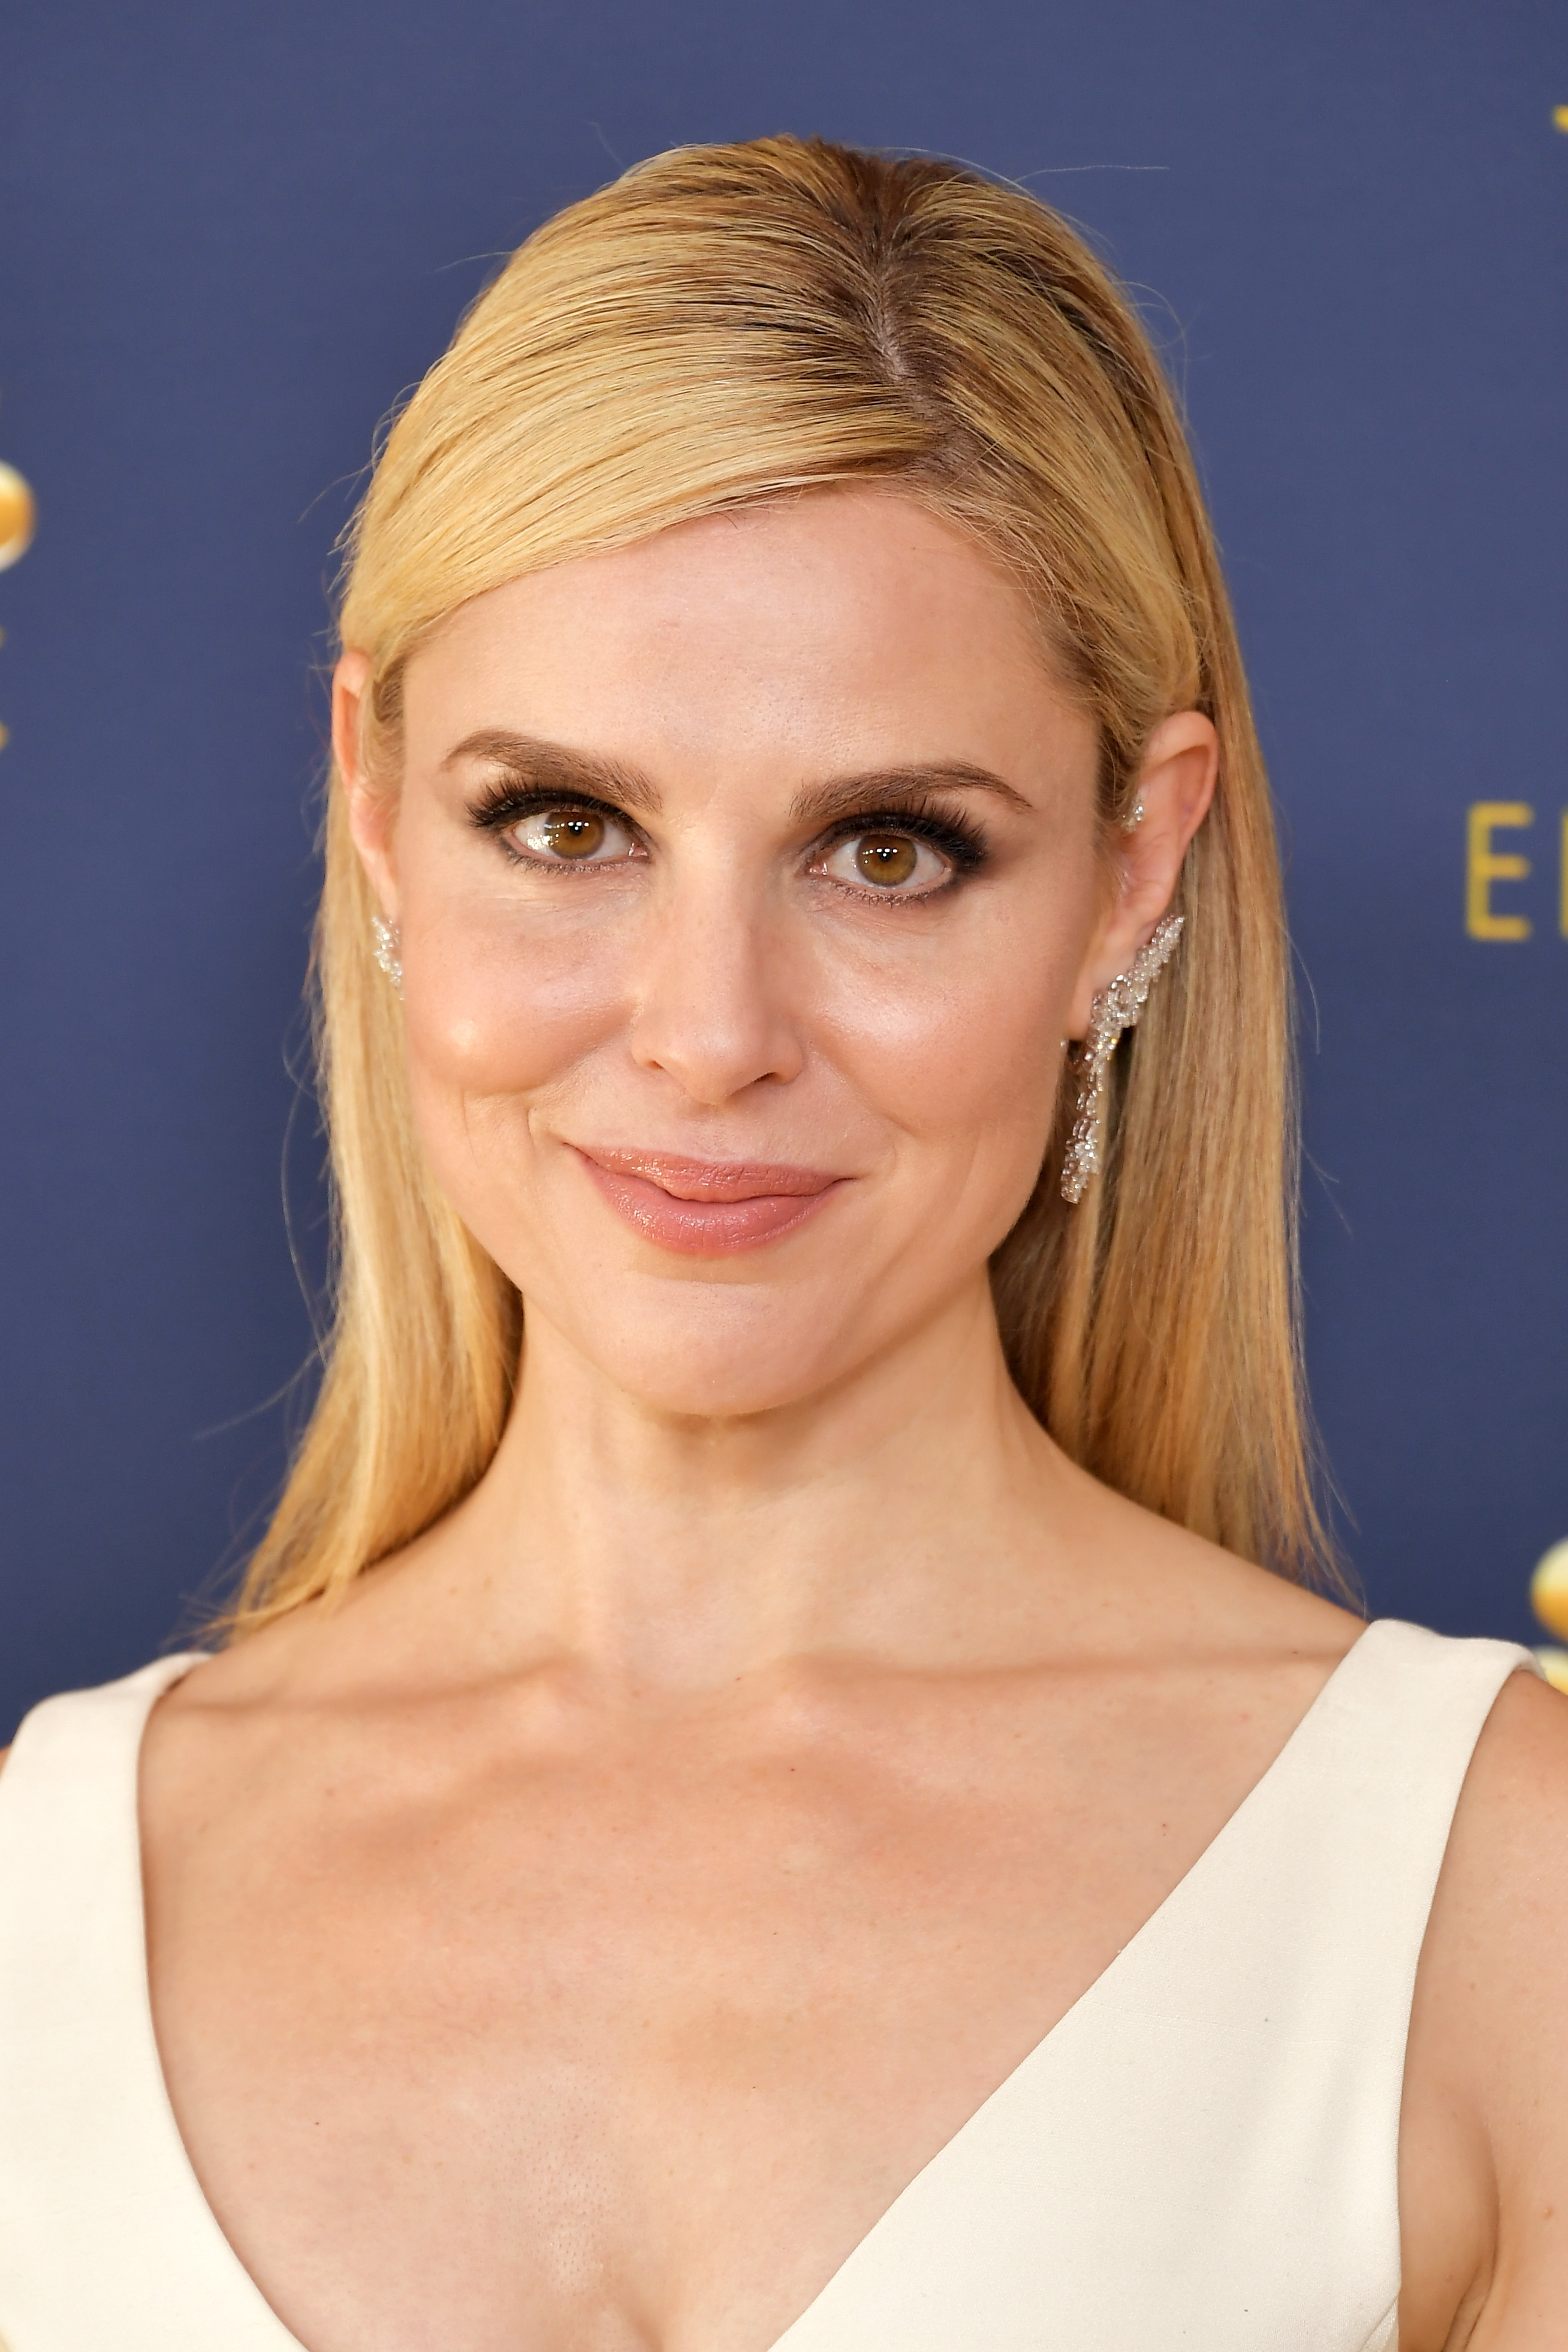 Cara Buono attends the 70th Emmy Awards at Microsoft Theater on September 17, 2018 in Los Angeles, California.